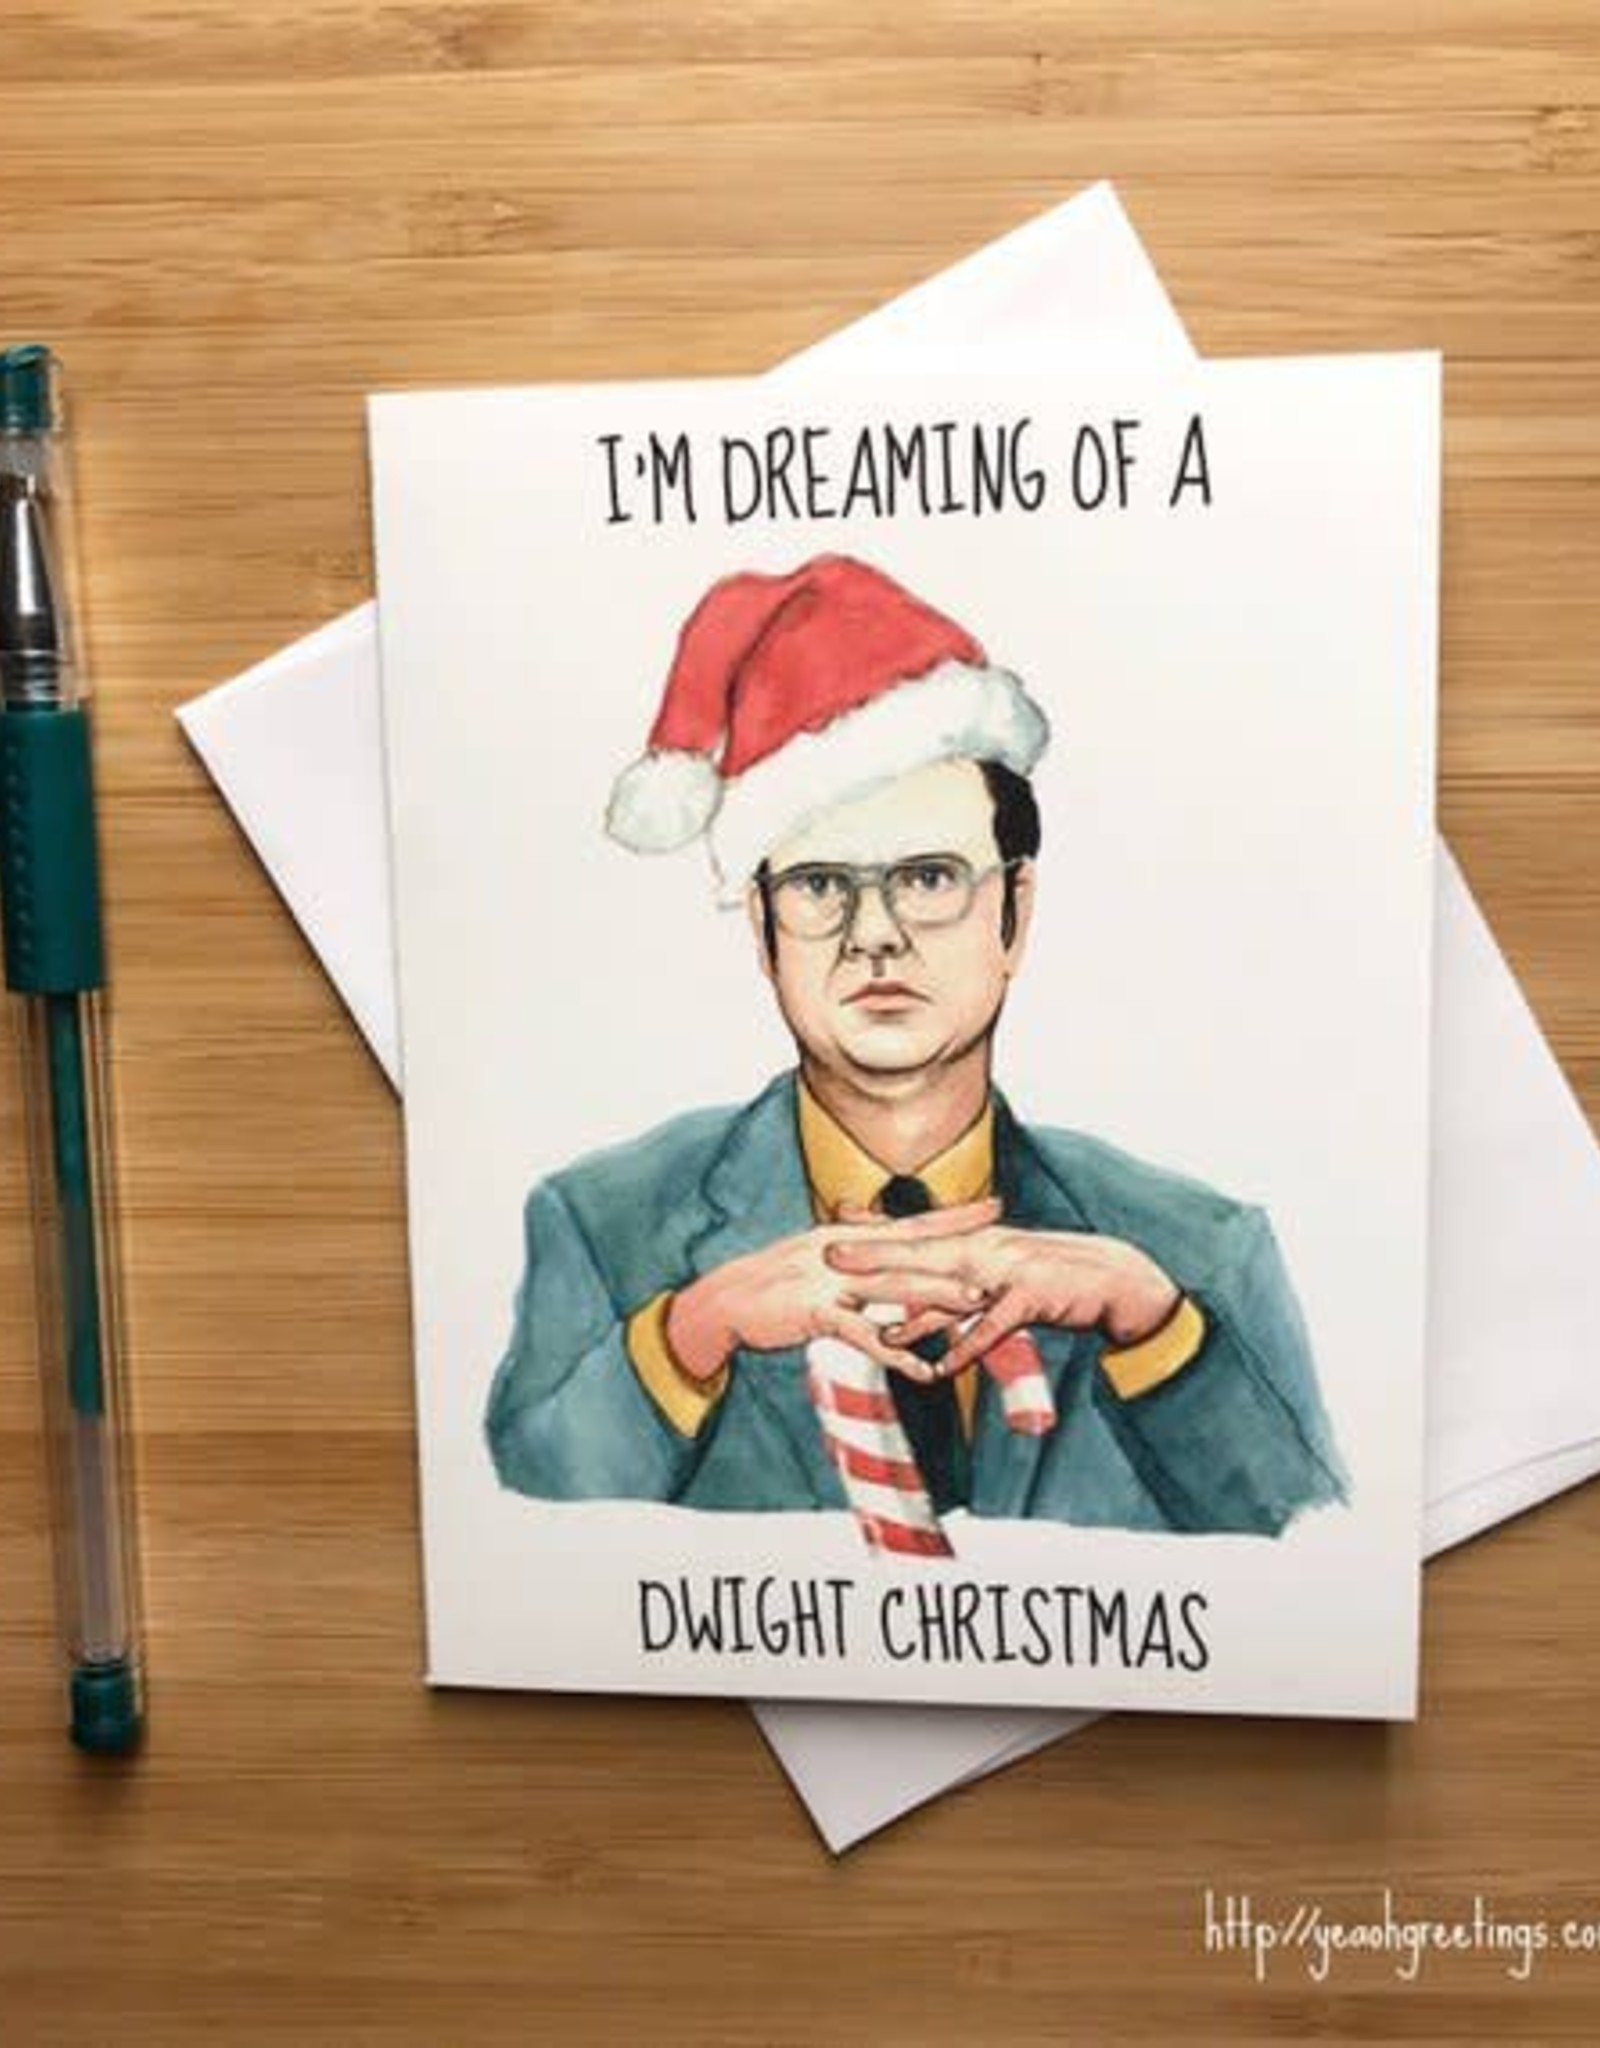 Dreaming of a Dwight Christmas (The Office) Greeting Card